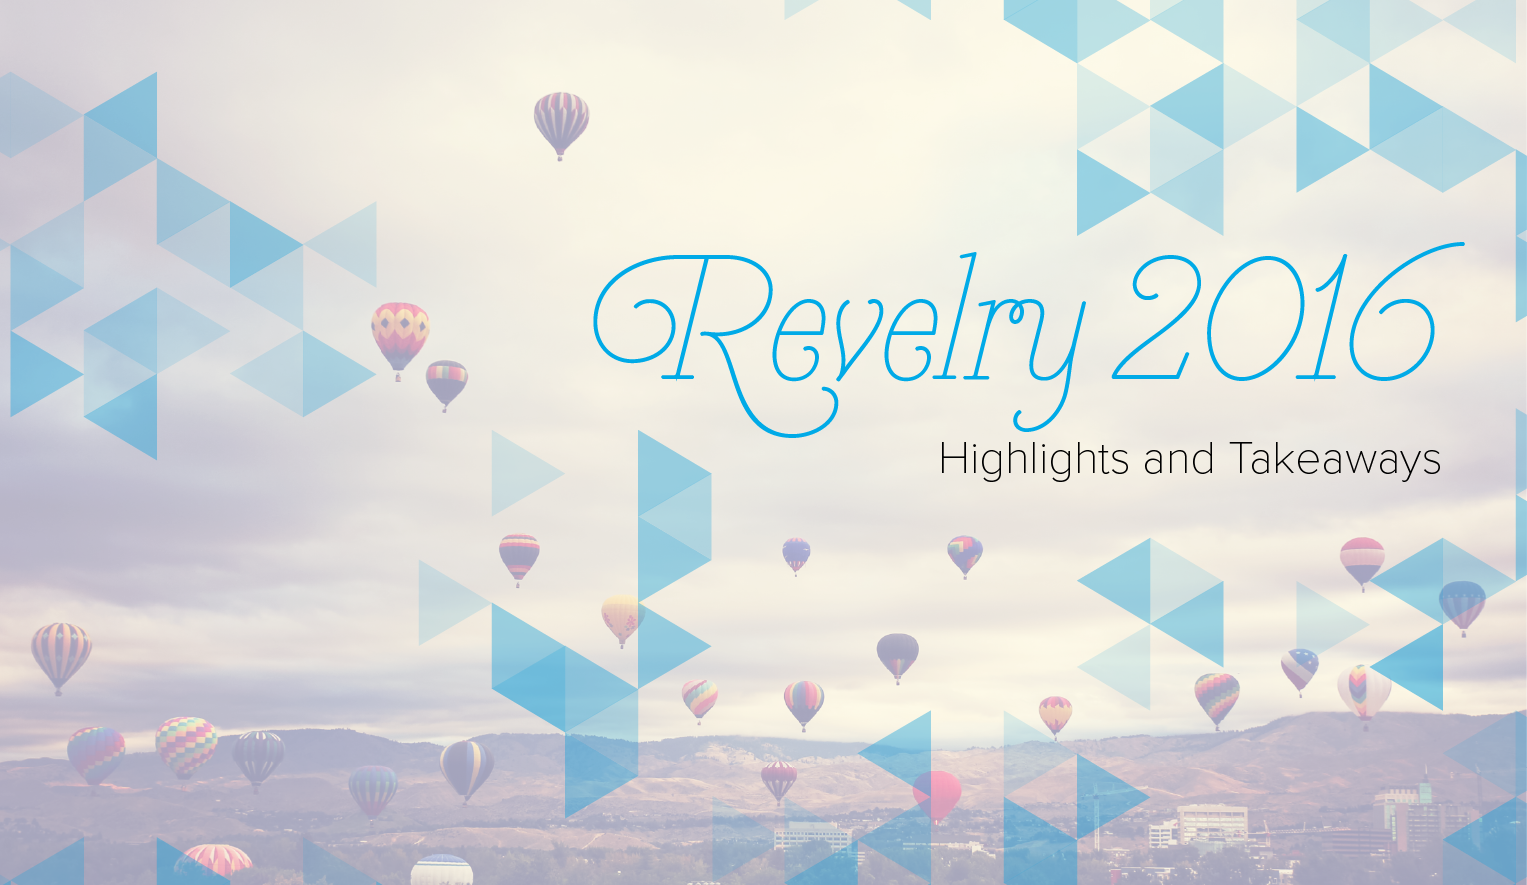 Key Highlights and Takeaways from Revelry 2016